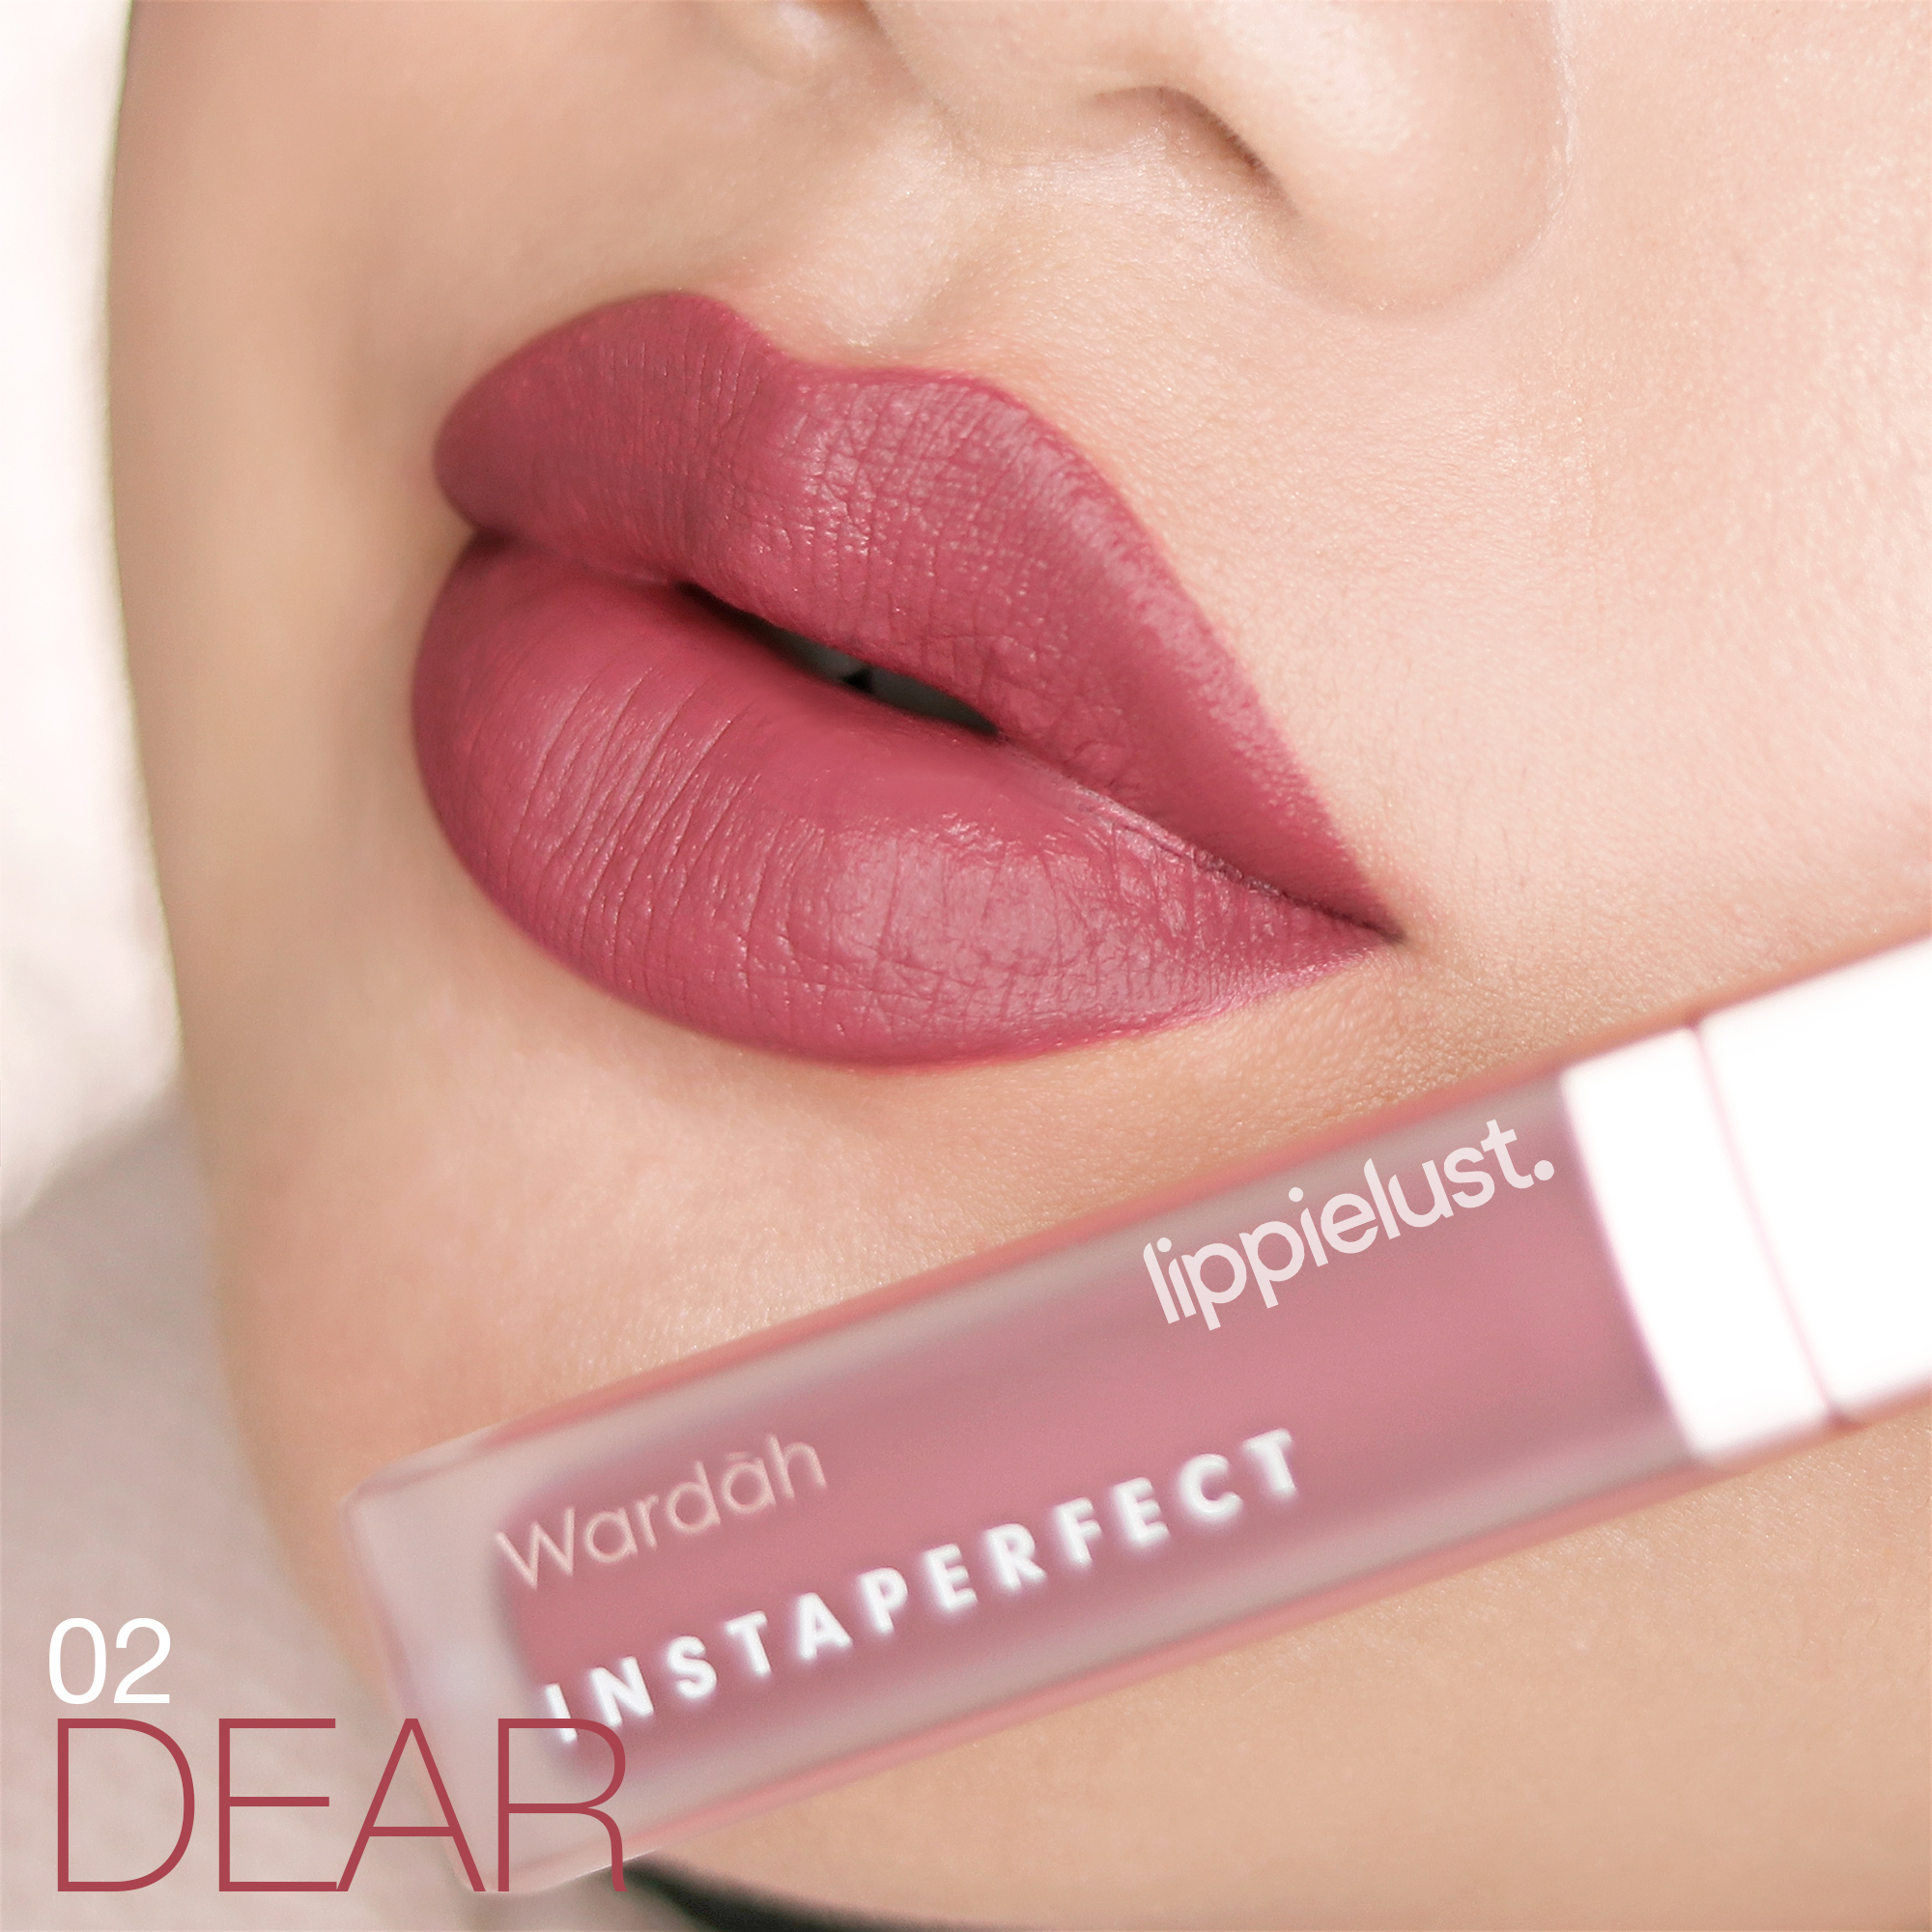 [REVIEW AND SWATCHES] WARDAH INSTAPERFECT MATTESETTER LIP